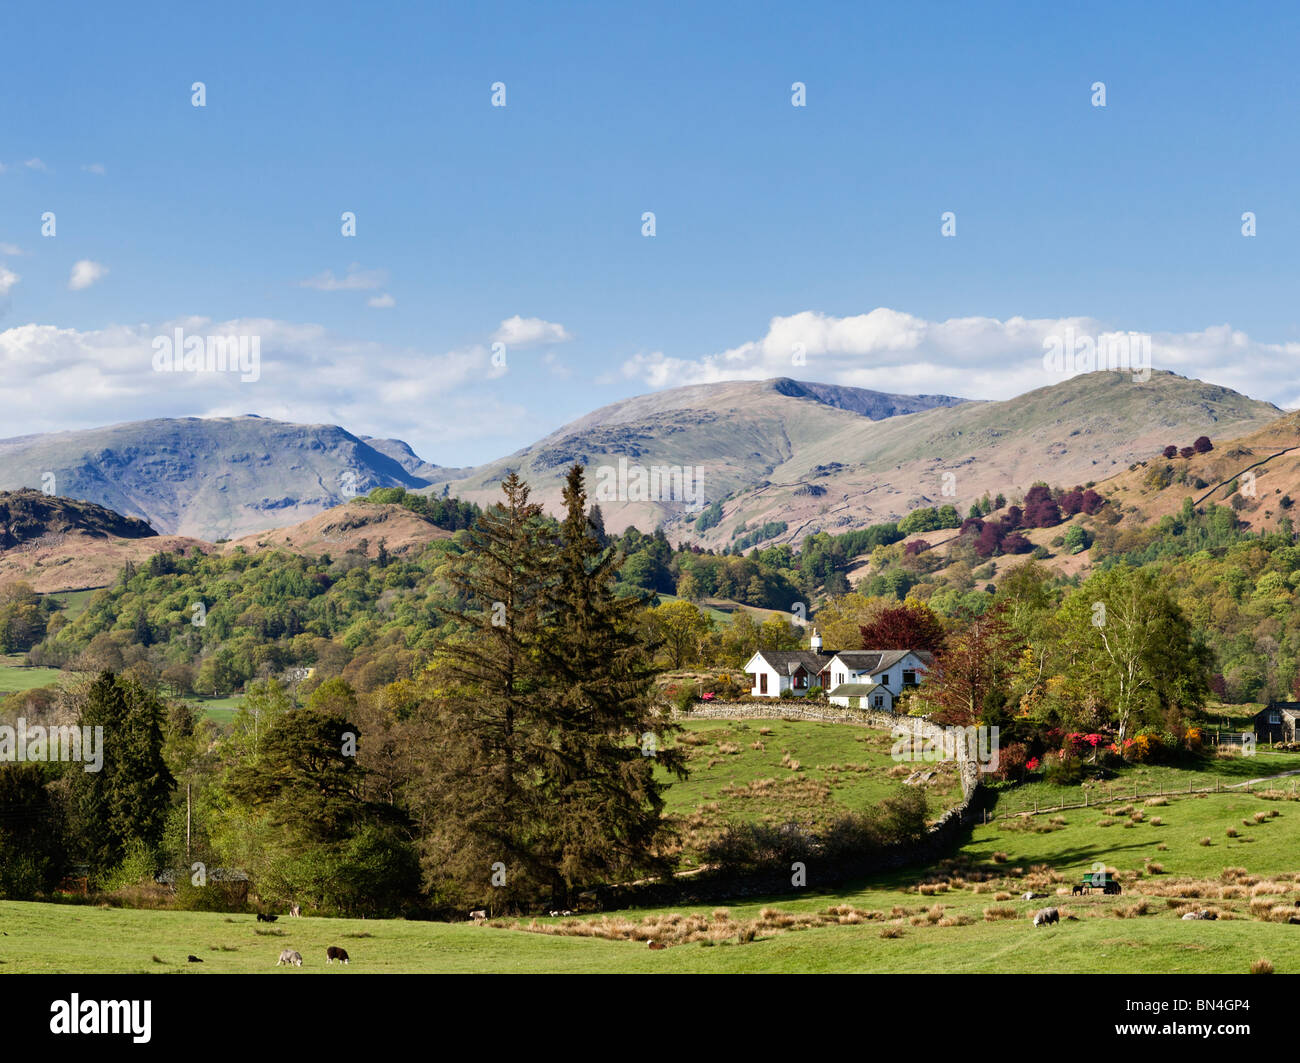 Rural farmhouse north east of Coniston surrounded by mountains in the summer in the Lake District, UK - Stock Image